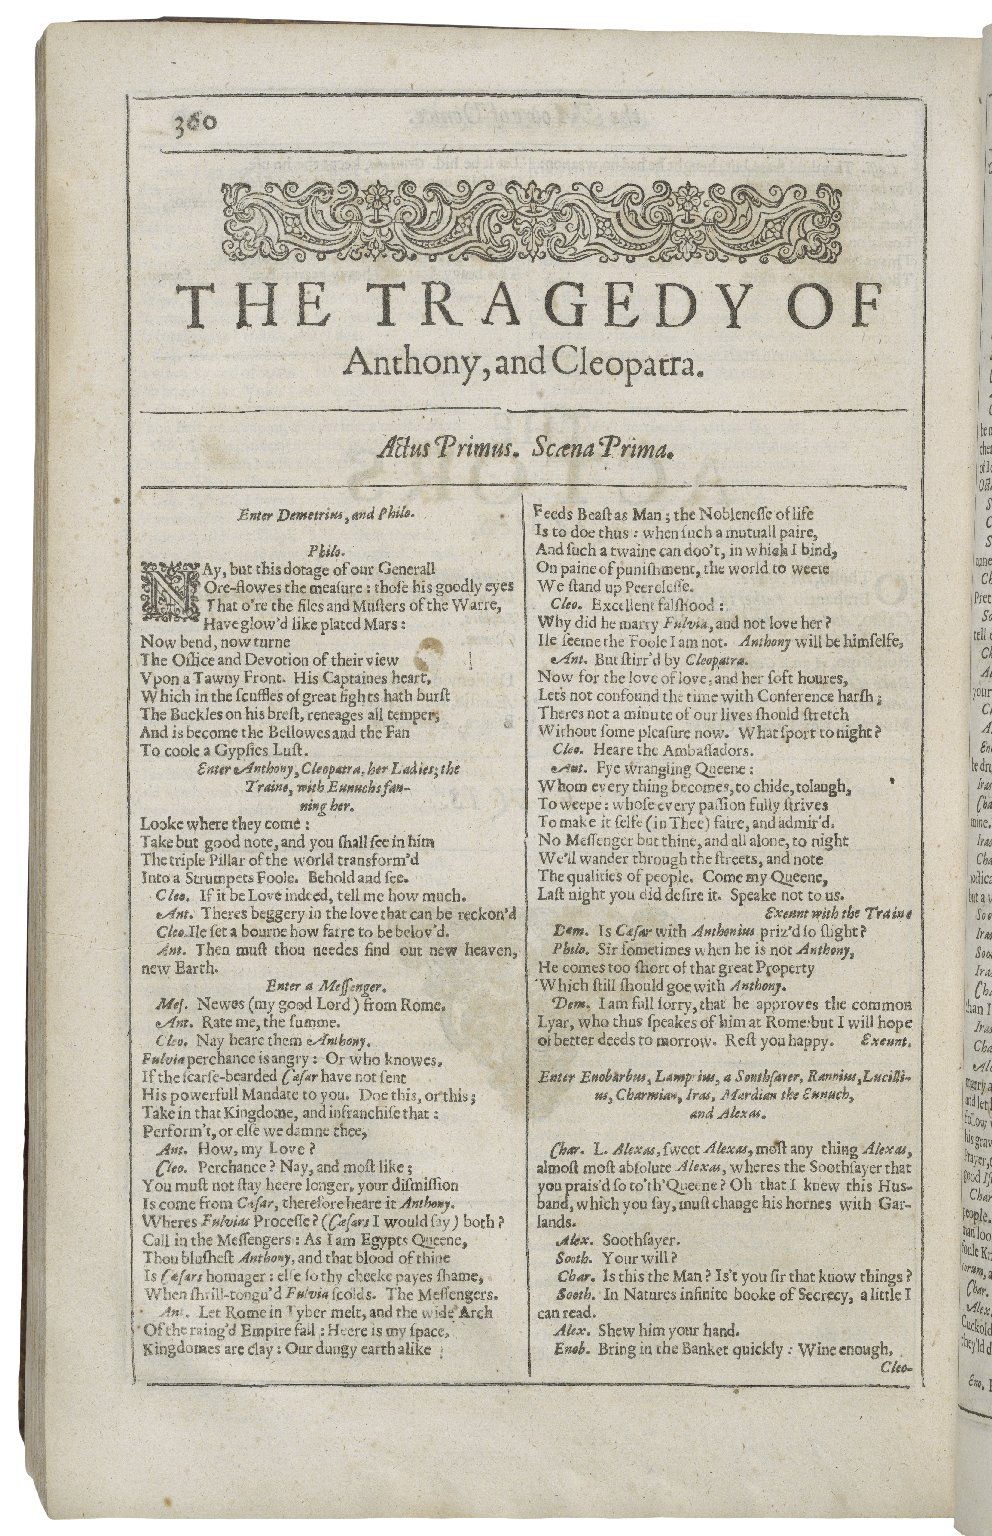 Opening of Antony and Cleopatra in the Second Folio